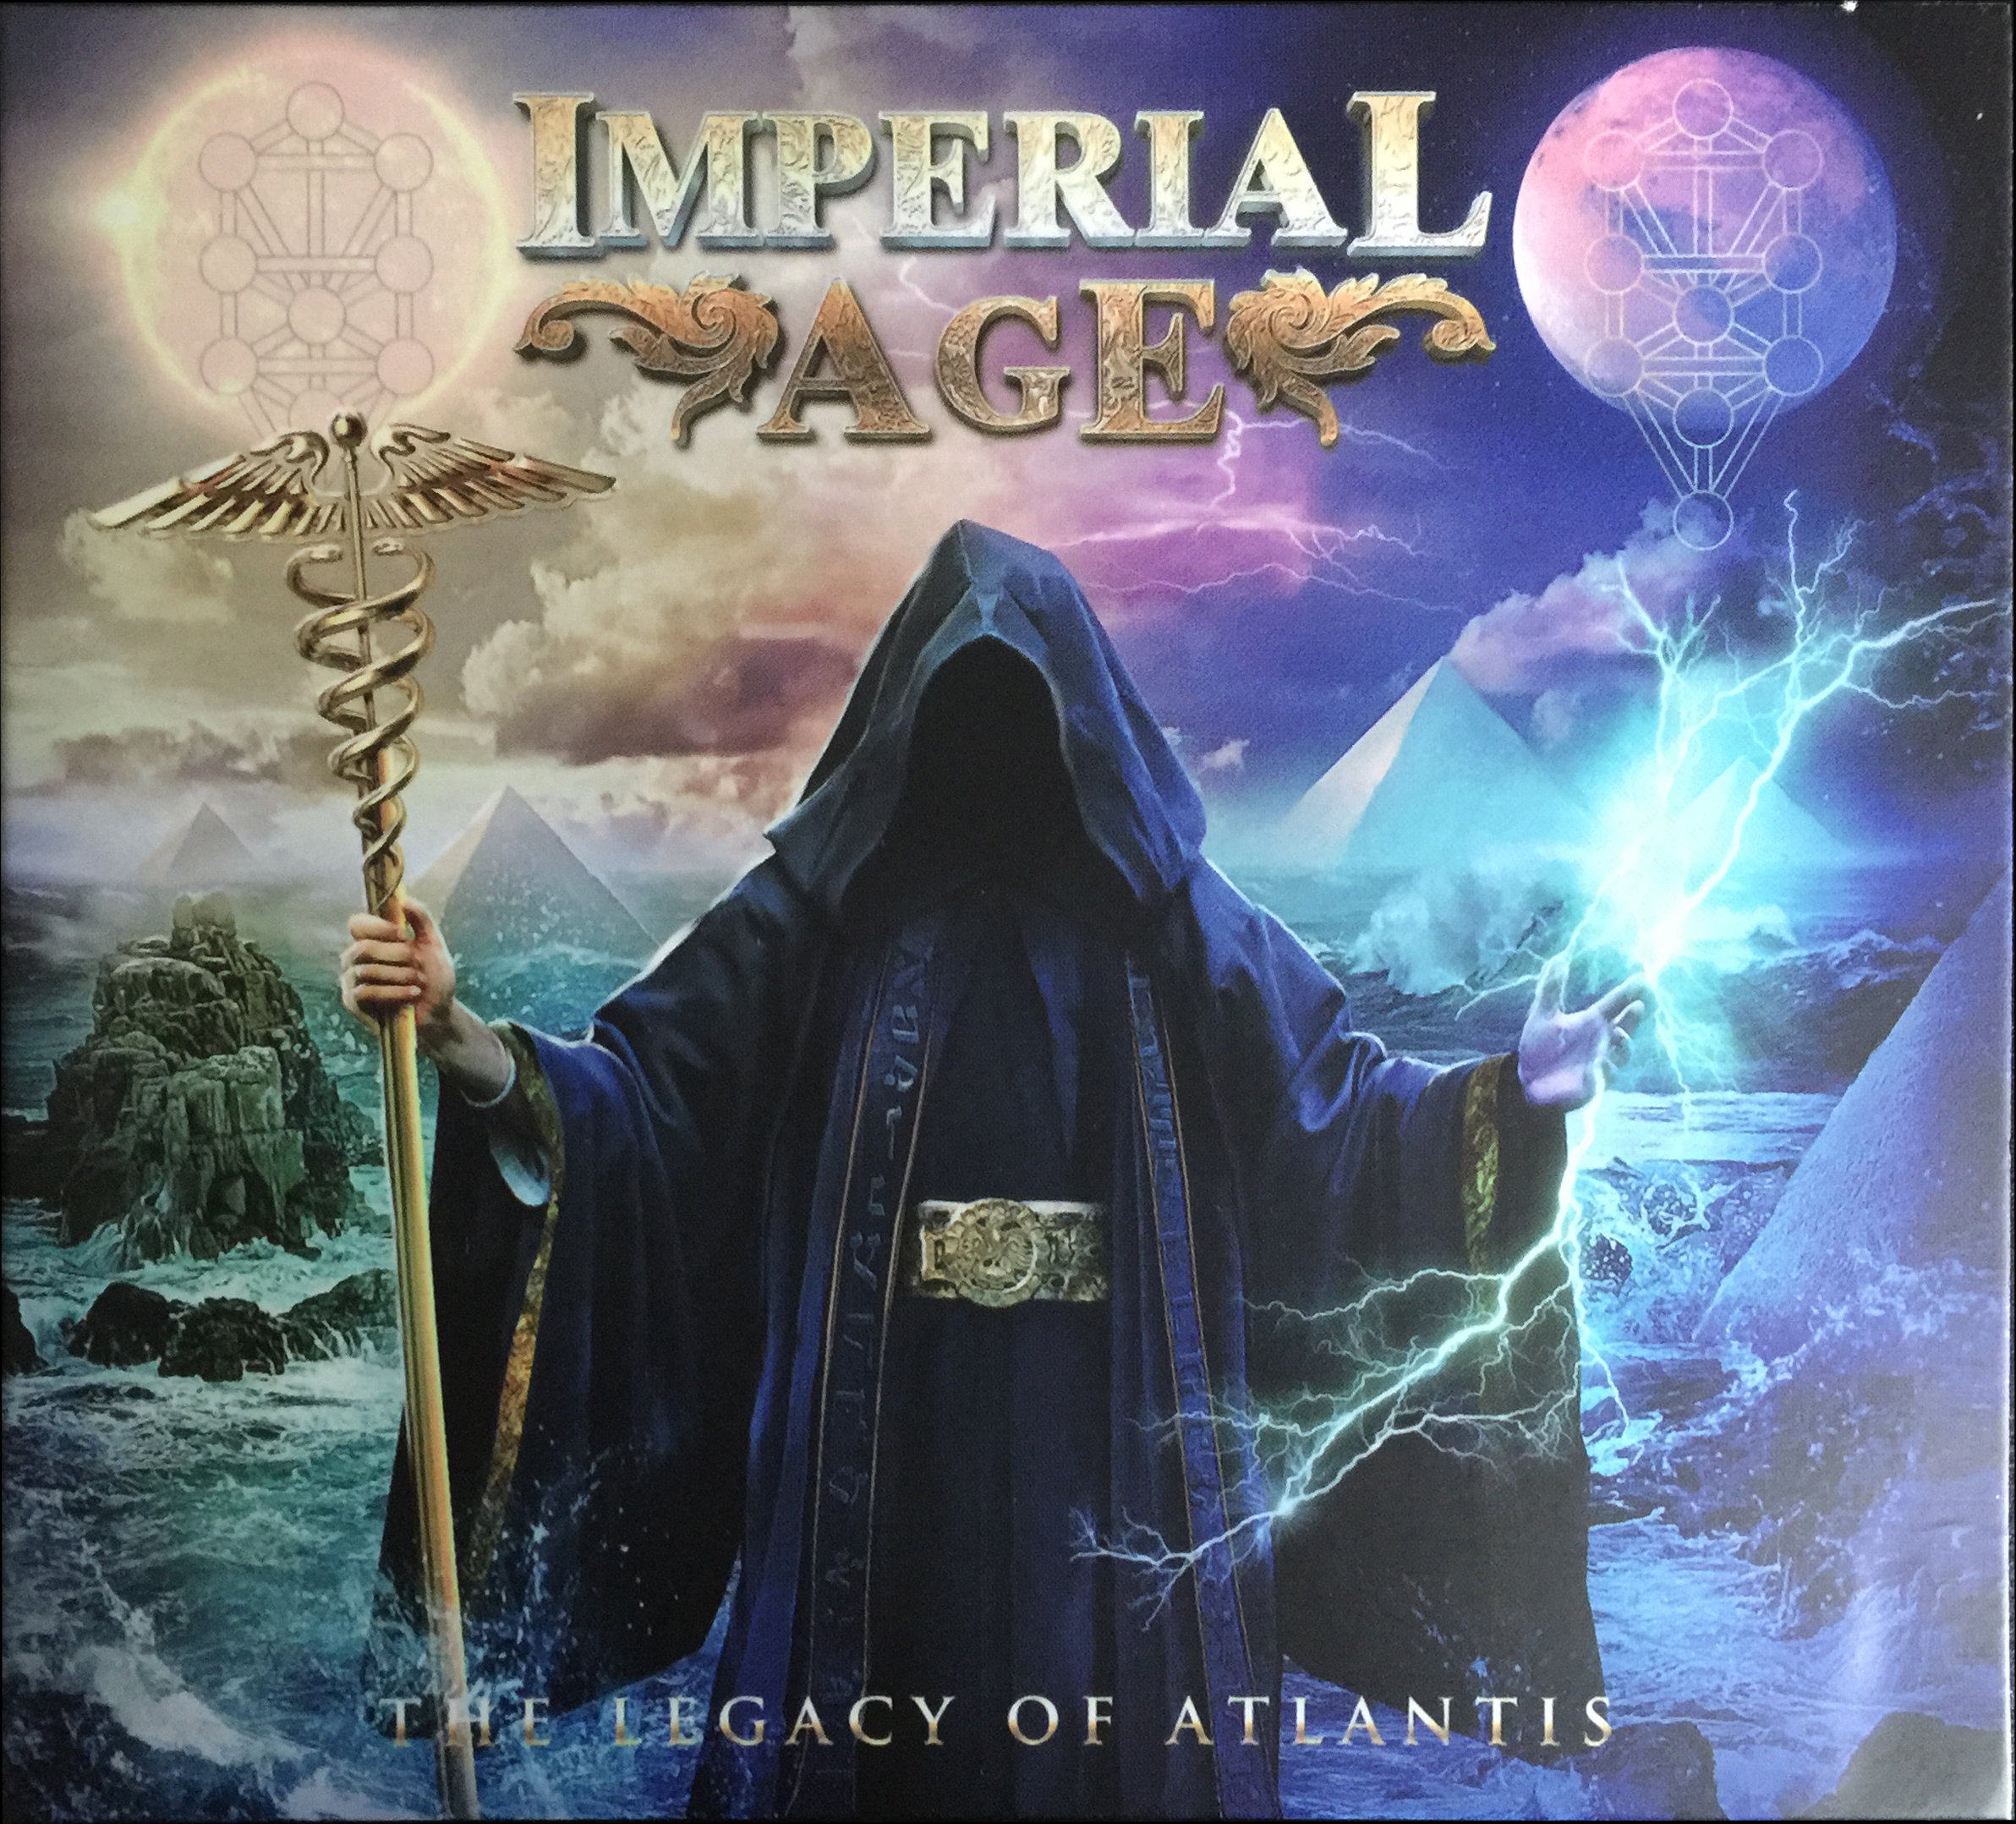 The Legacy of Atlantis [CD Digipack] LIMITED! 000001